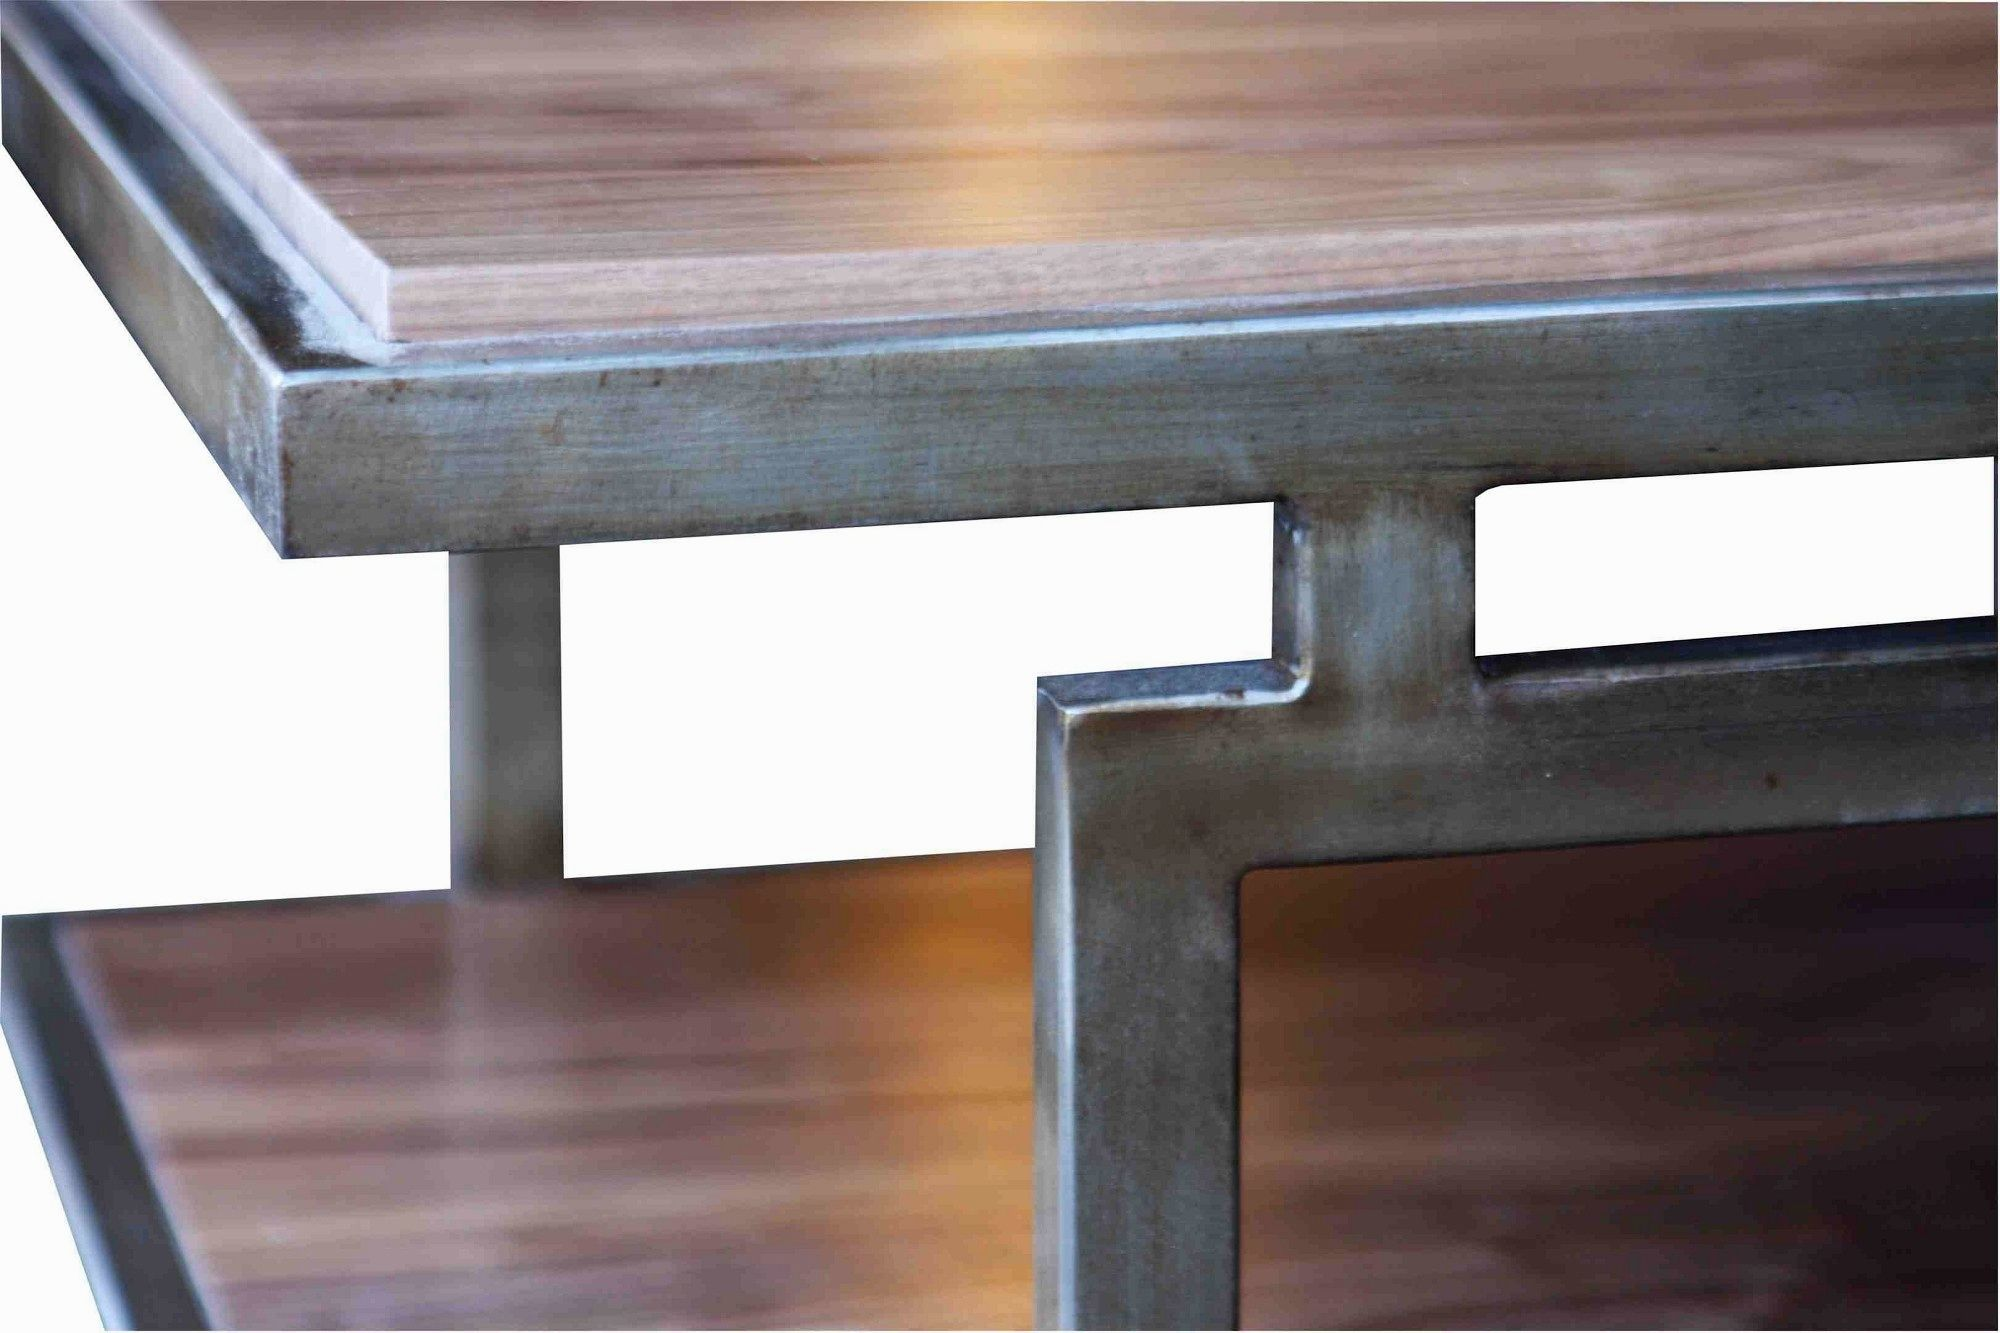 lovely living spaces sofa table collection-Inspirational Living Spaces sofa Table Ideas